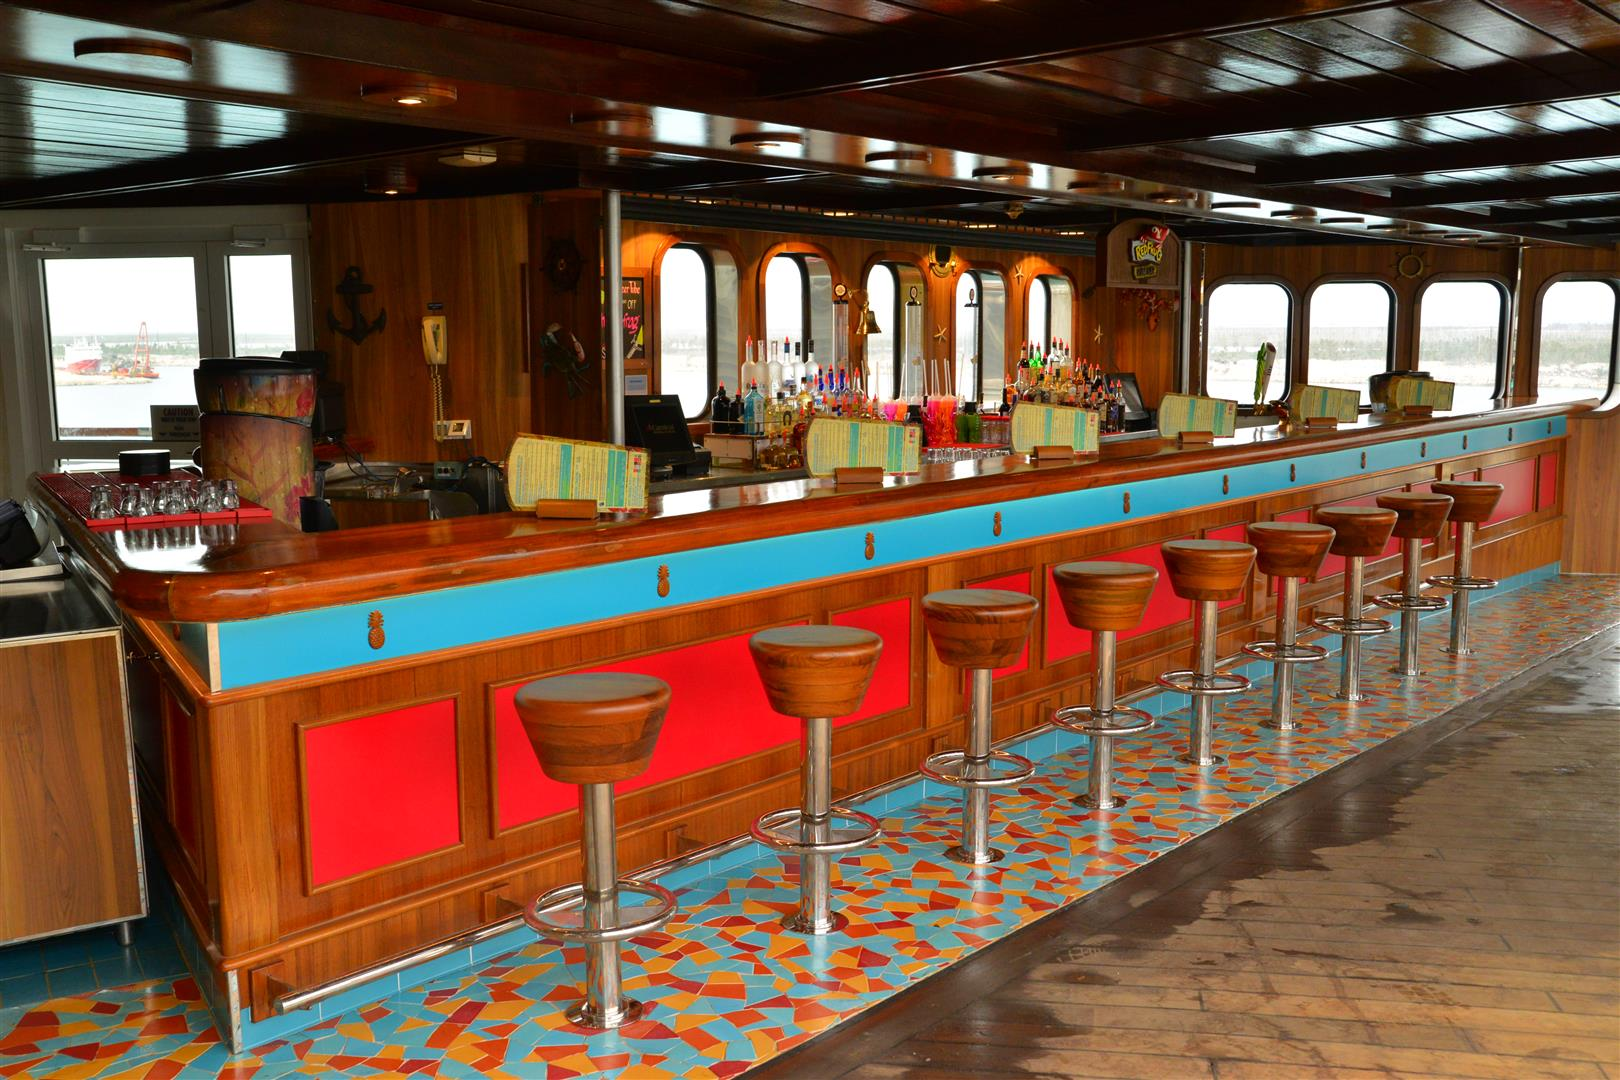 Carnival Sensation Undergoes Extensive Renovation That Adds Exciting Food and Beverage Options, New 'Camp Ocean' Play Space